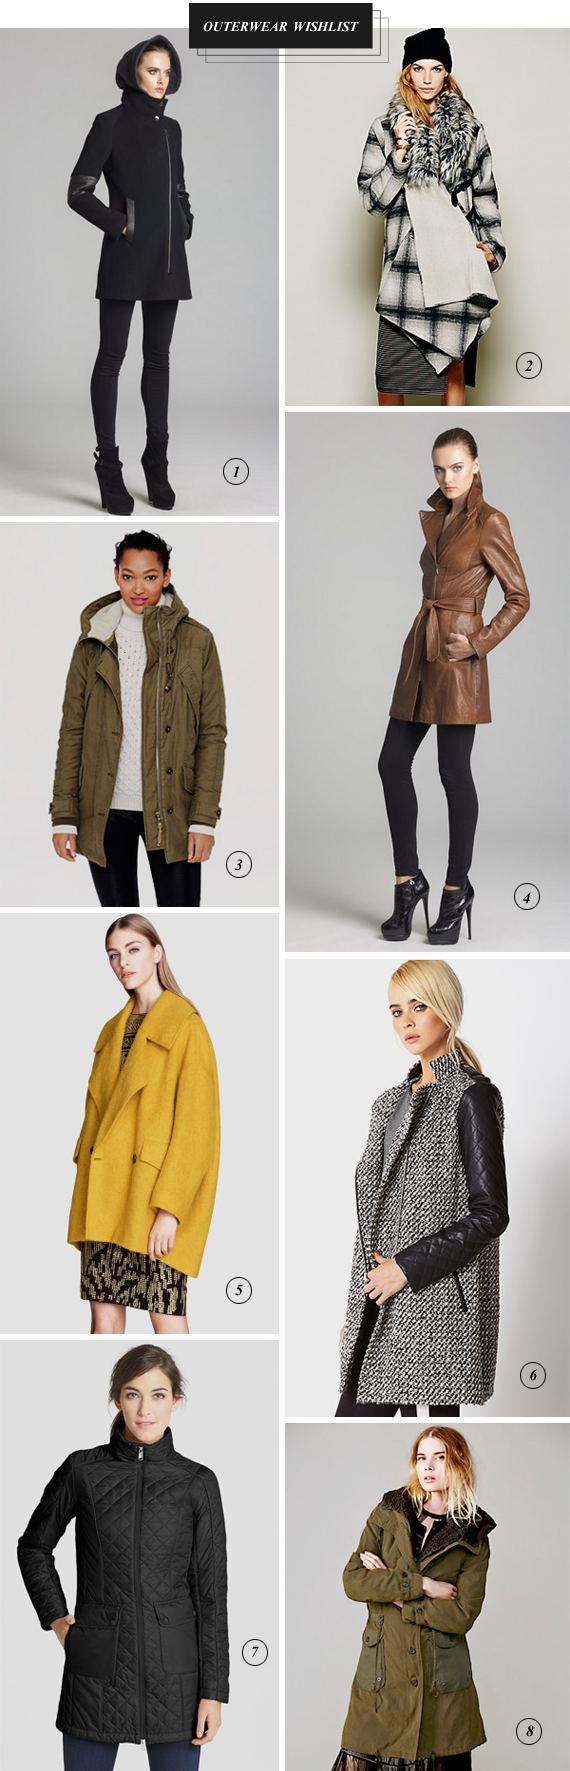 Winter Outerwear Wishlist